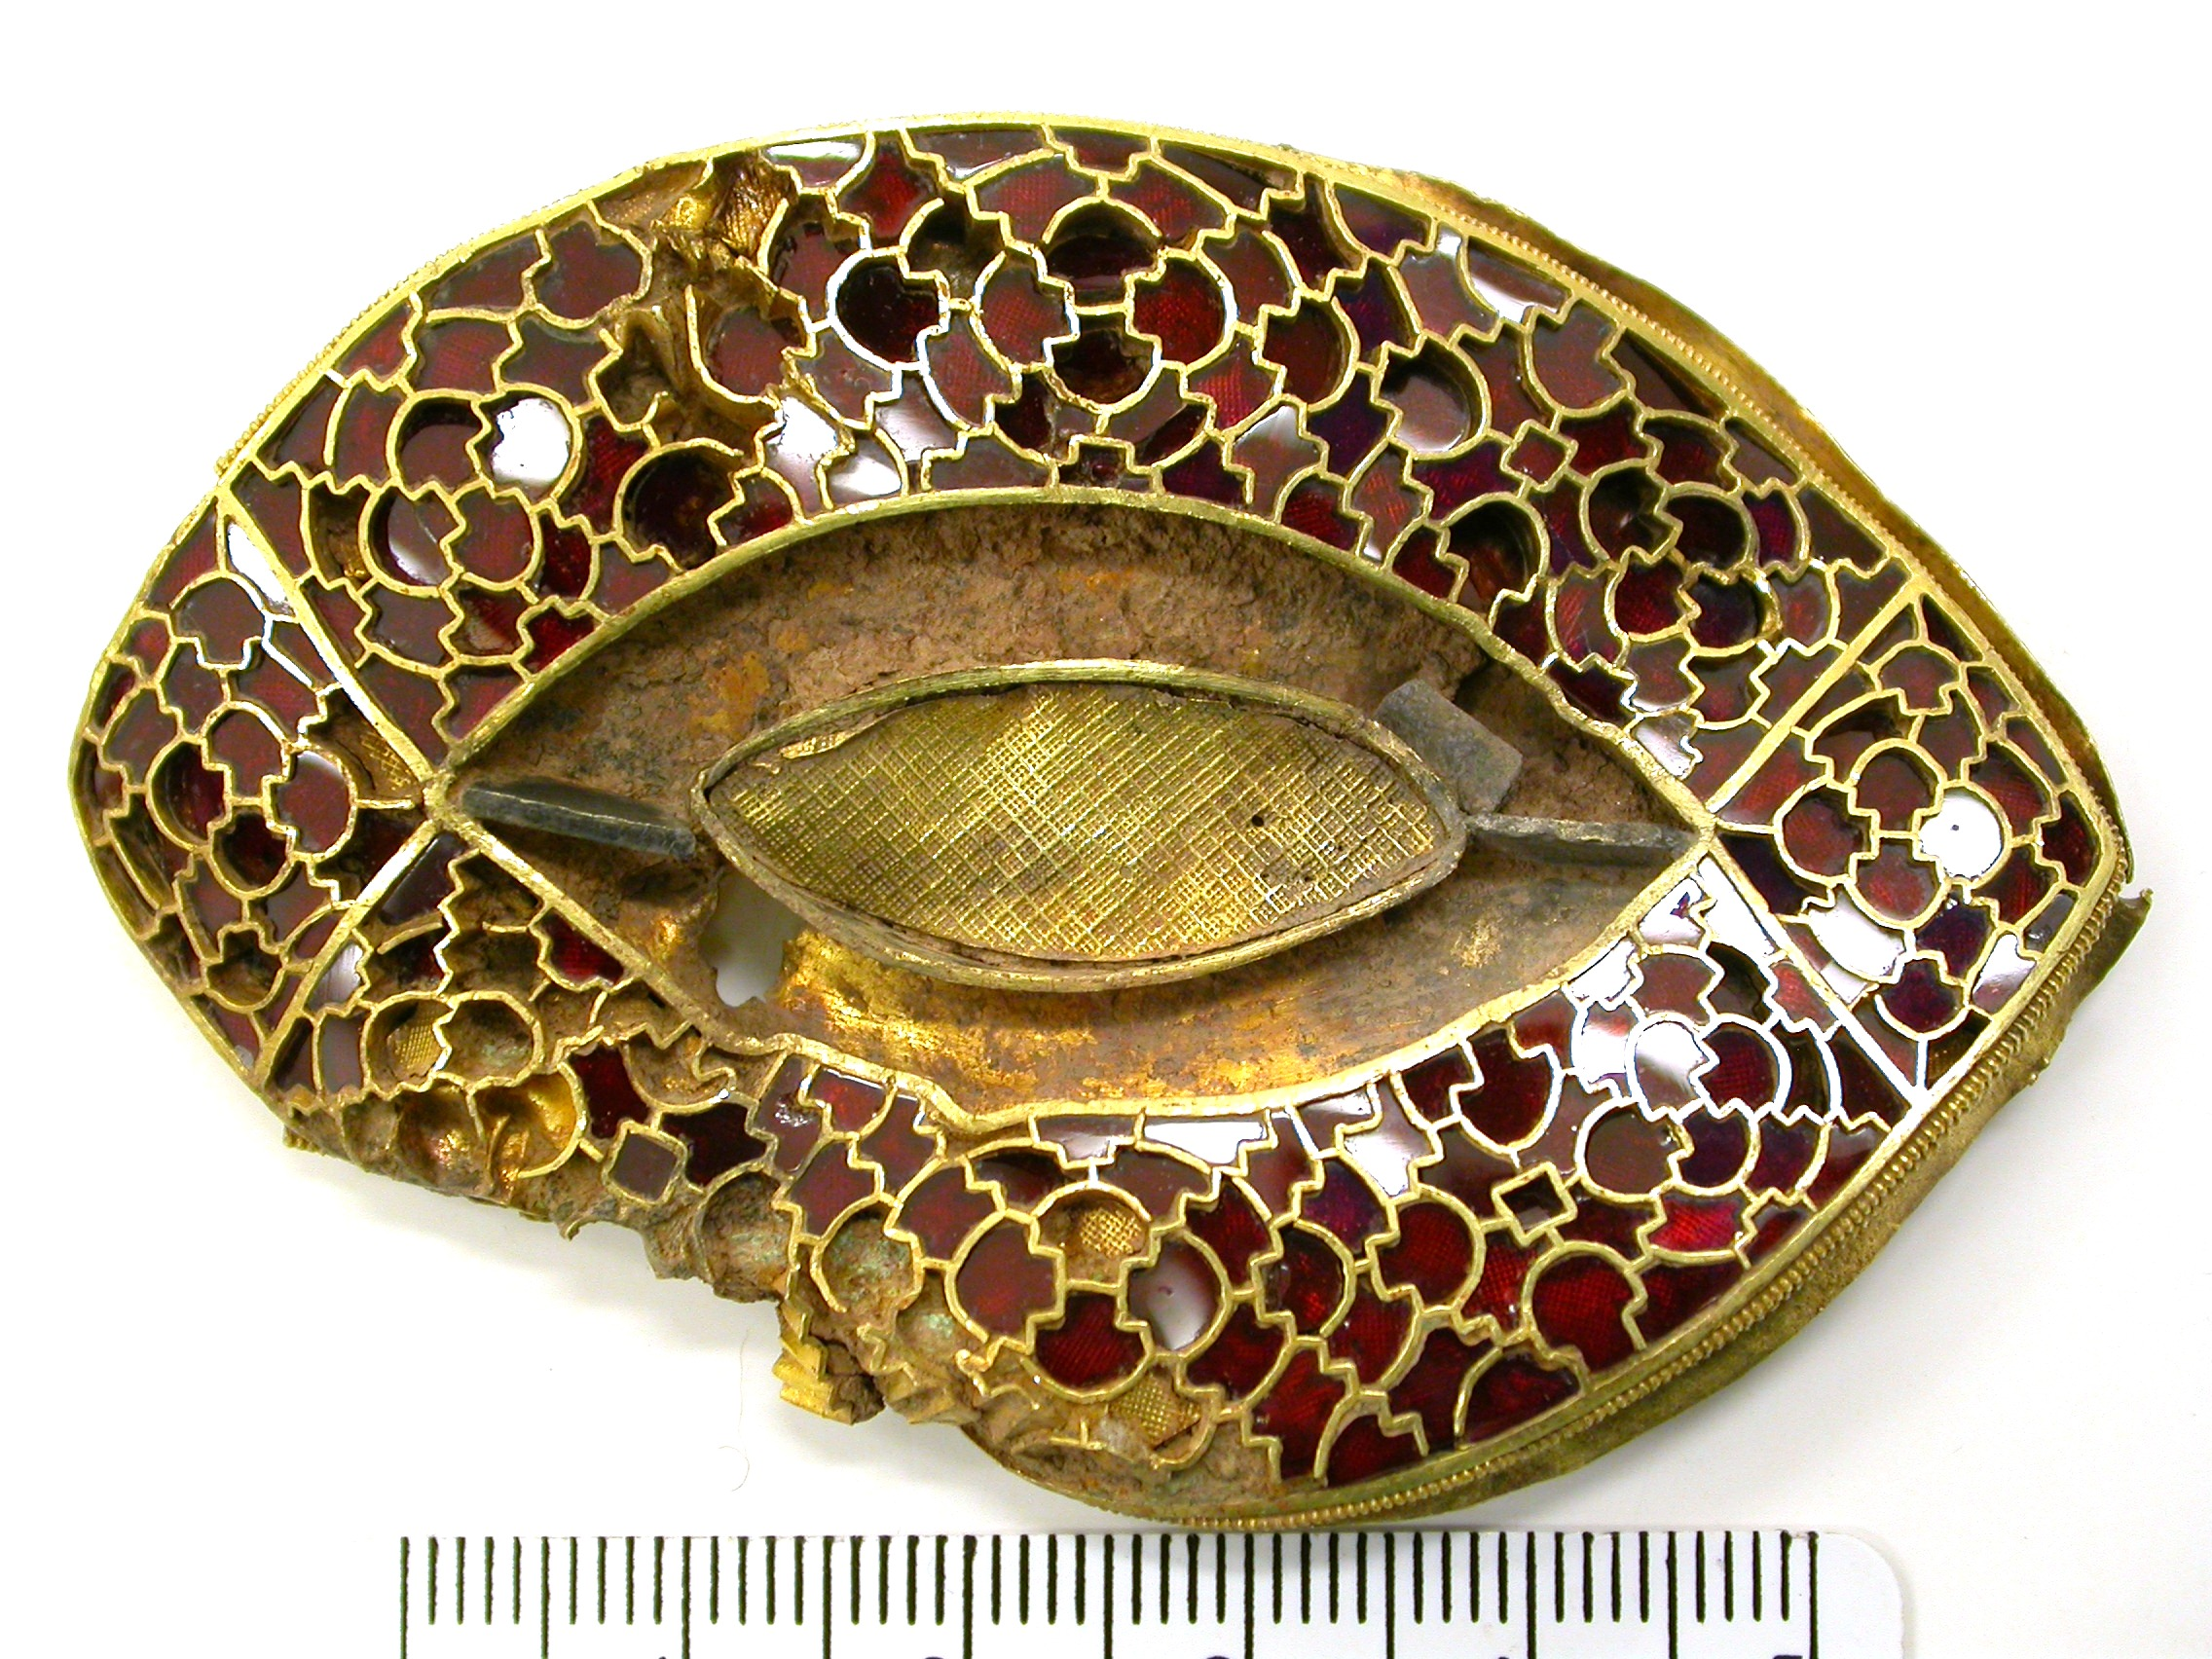 The Gold and Garnet Lentoid Plate K270